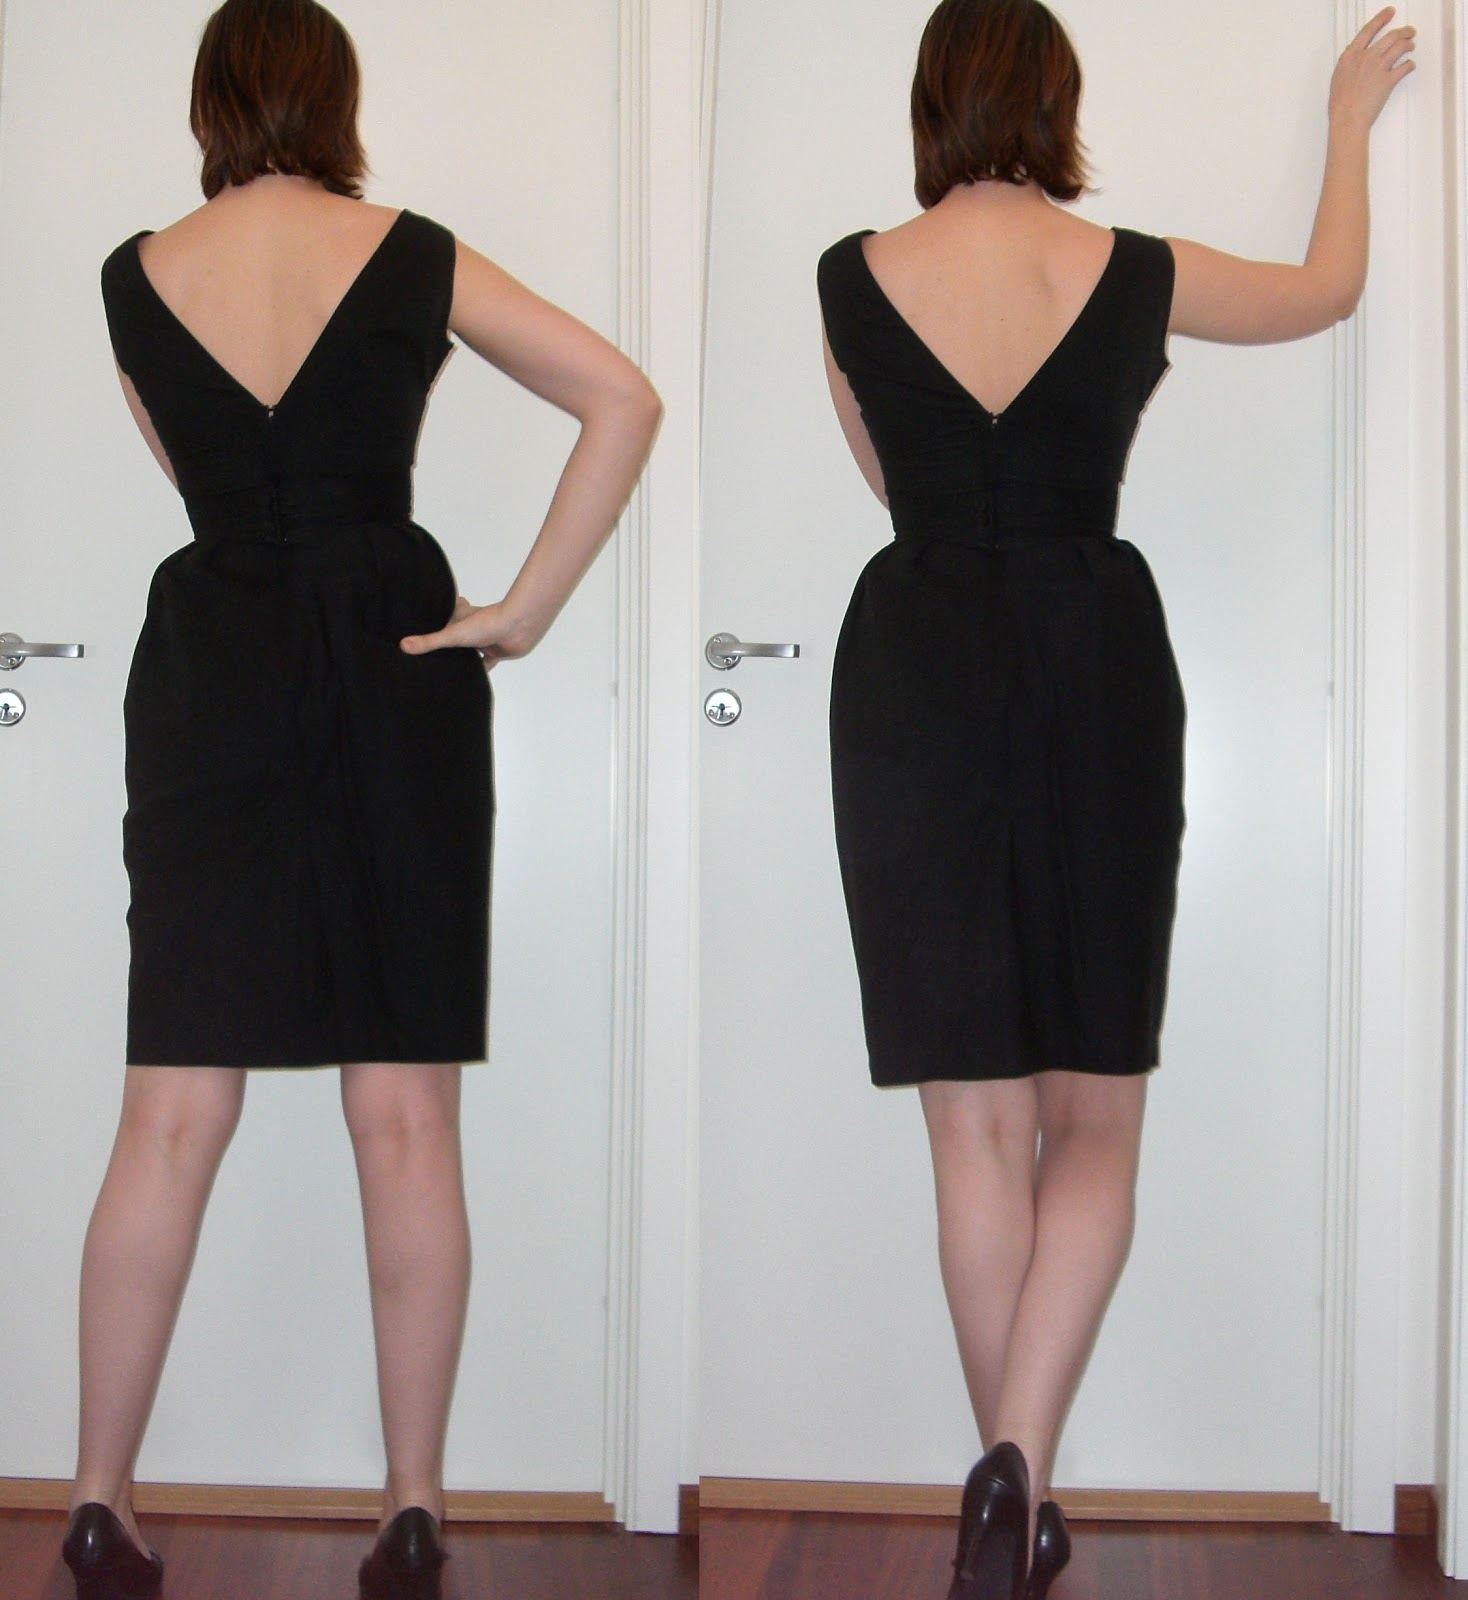 how to make a dress bigger in the back